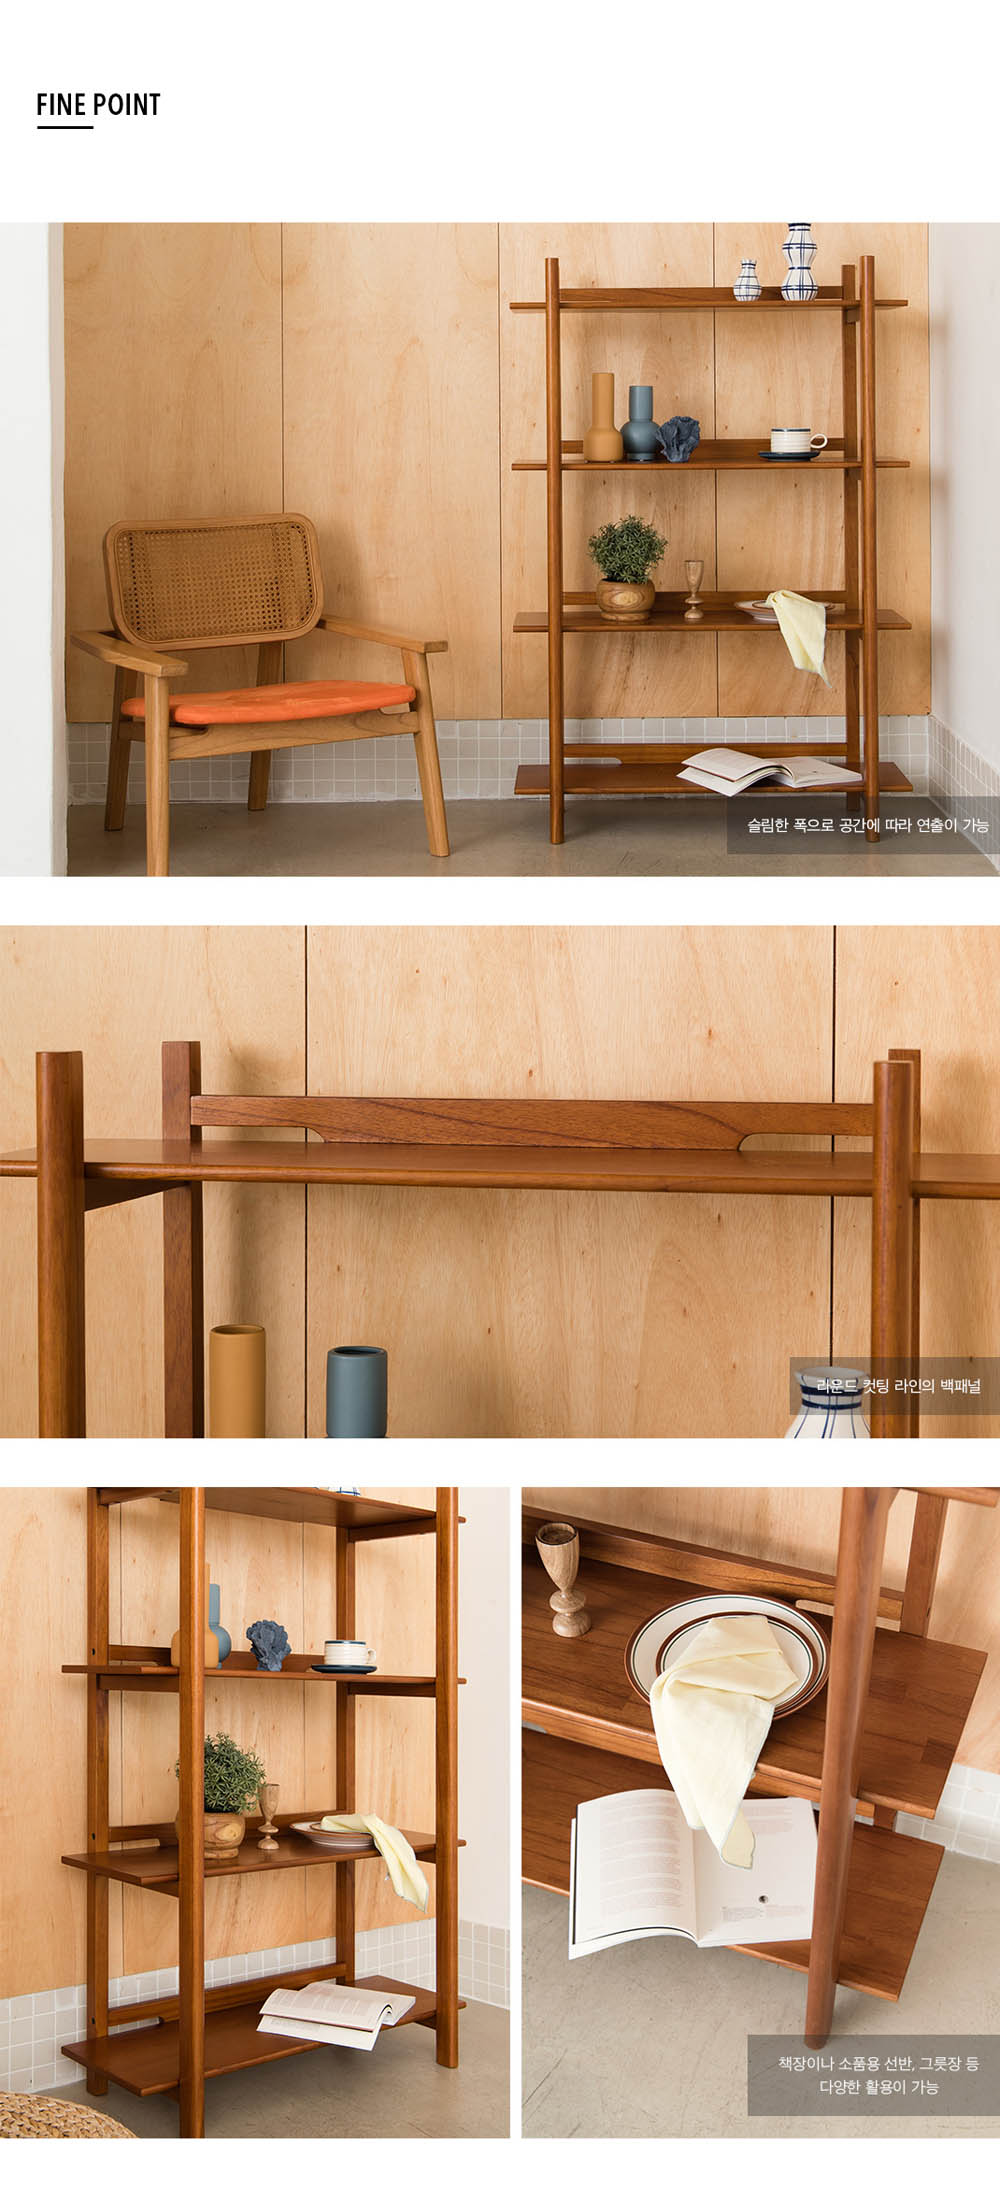 continew_antique_4_tier_shelf_finepoints_specs_by_born_in_colour